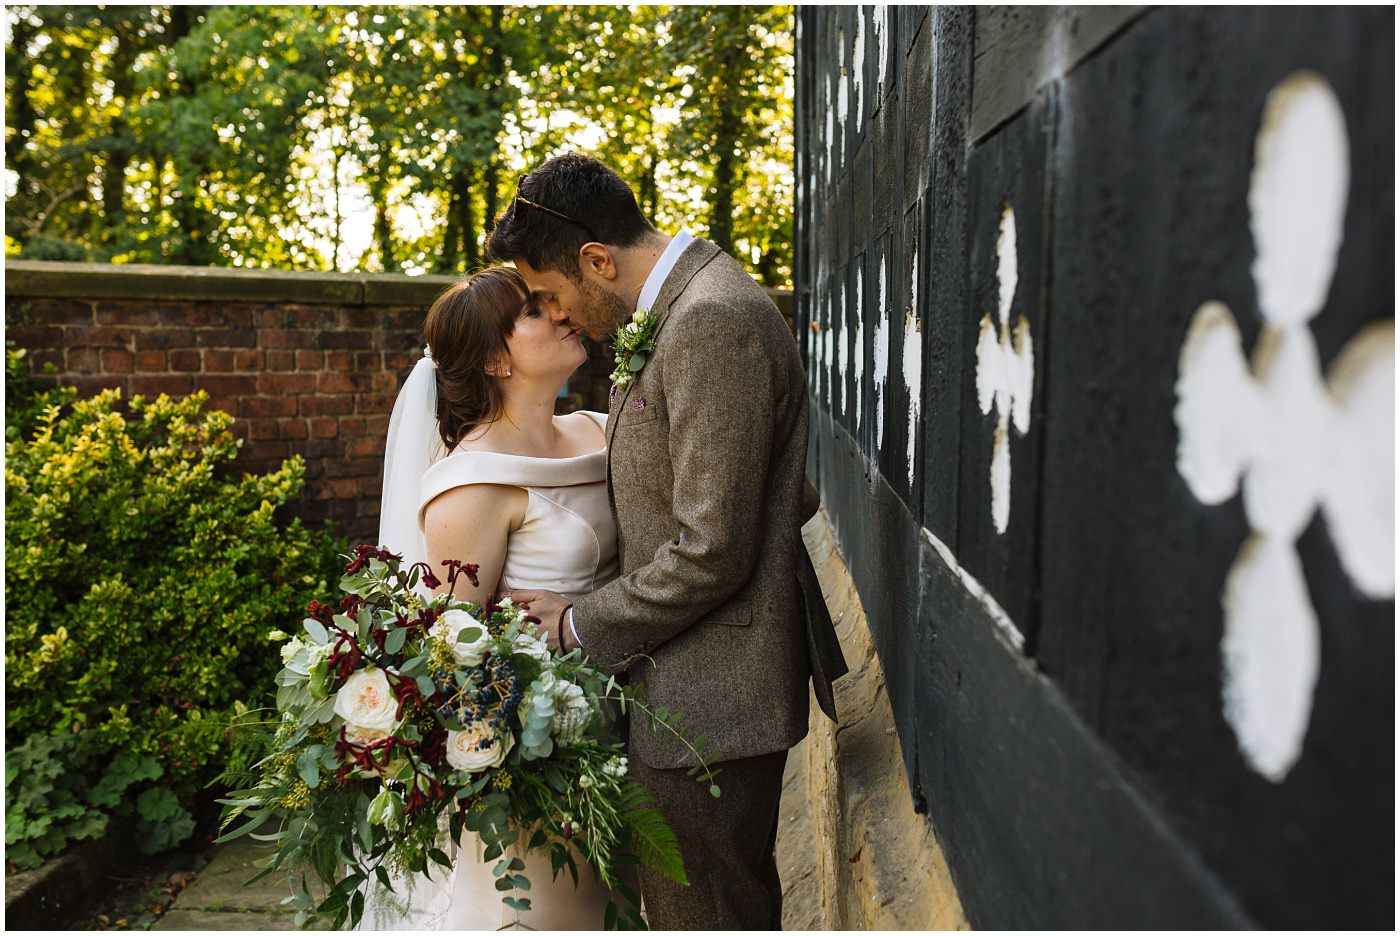 beautiful wedding couples photos at samlesbury hall